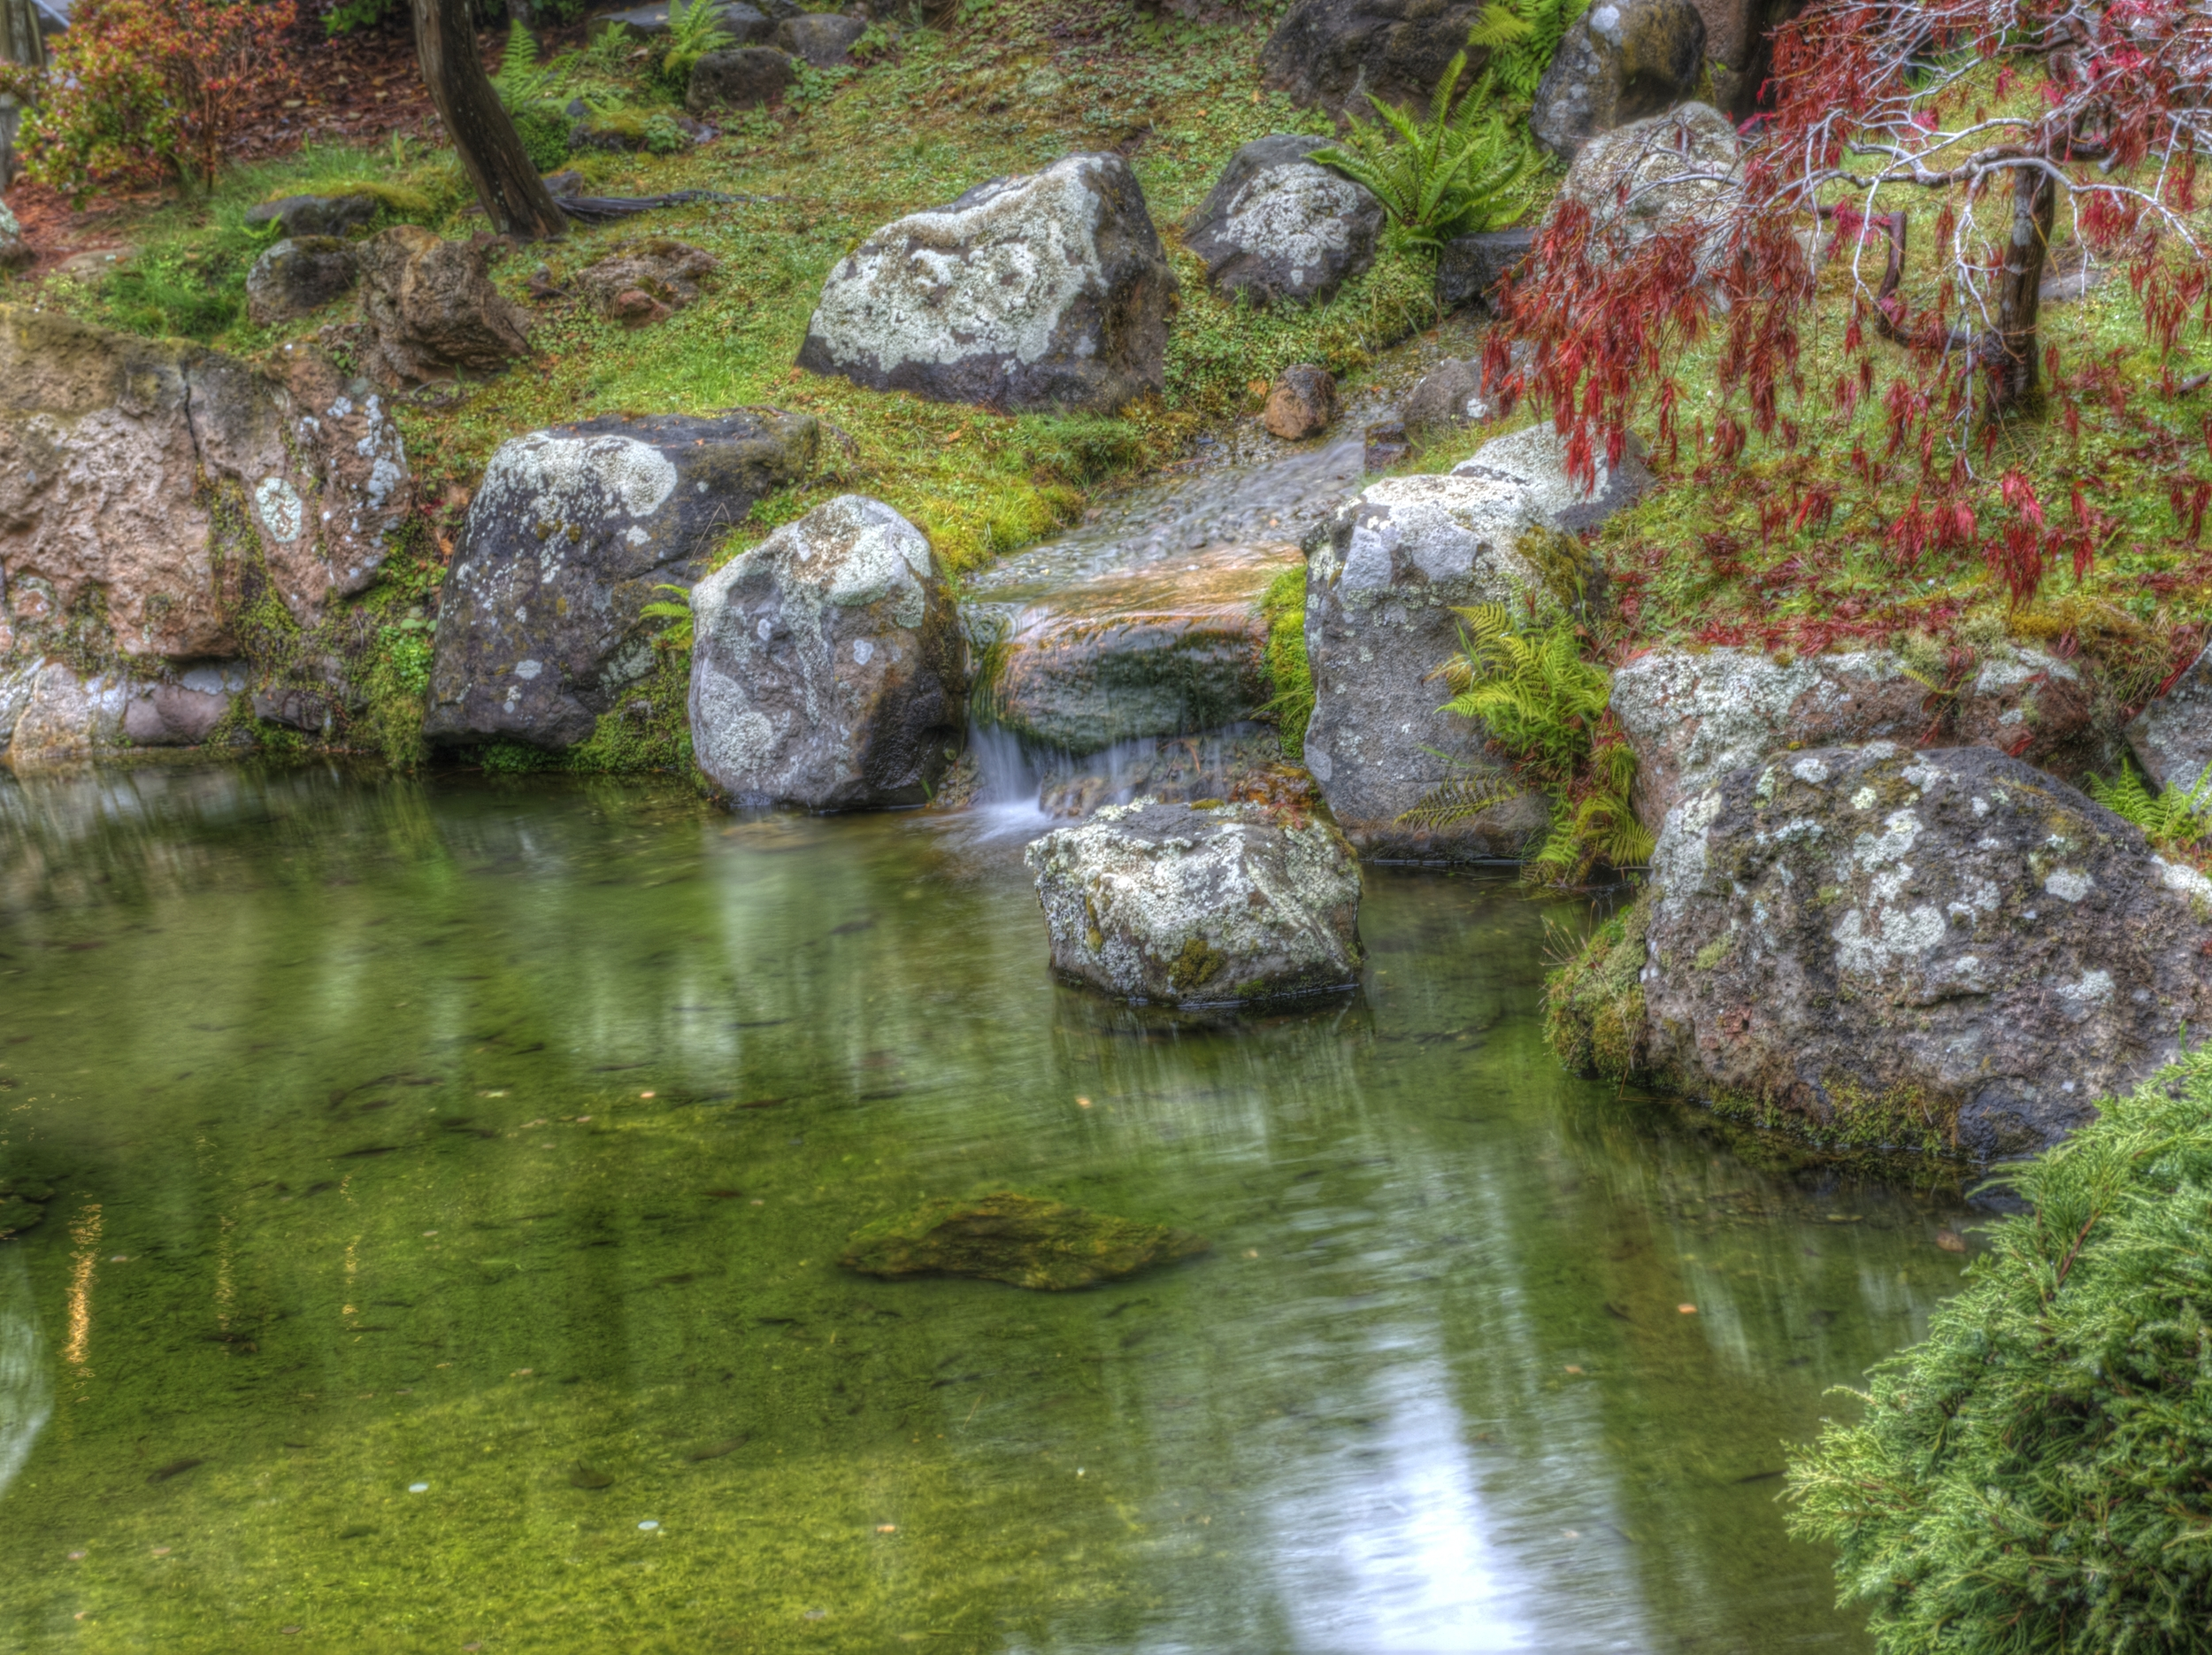 A small waterfall flows into the pond at the Tea Garden.